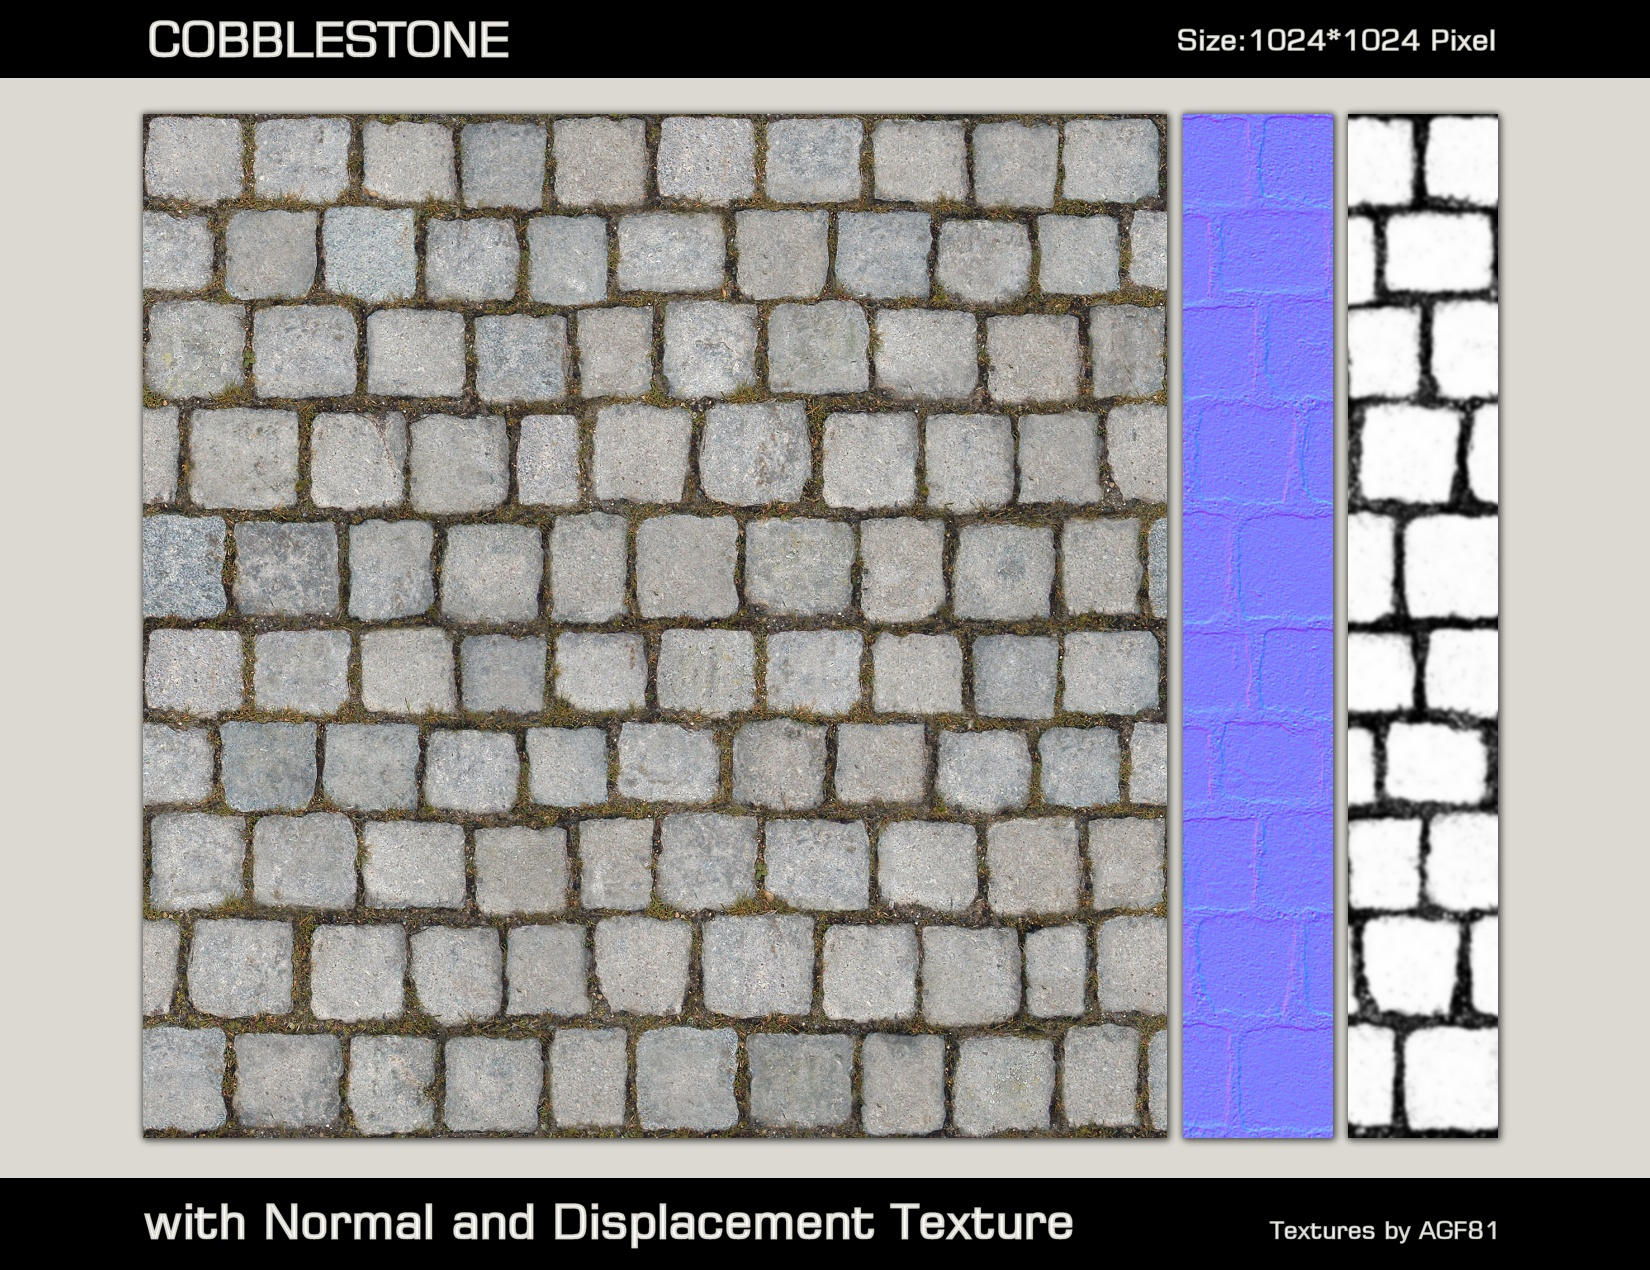 Seamless Cobblestone by AGF81 Seamless Cobblestone by AGF81. Seamless Cobblestone by AGF81 on DeviantArt